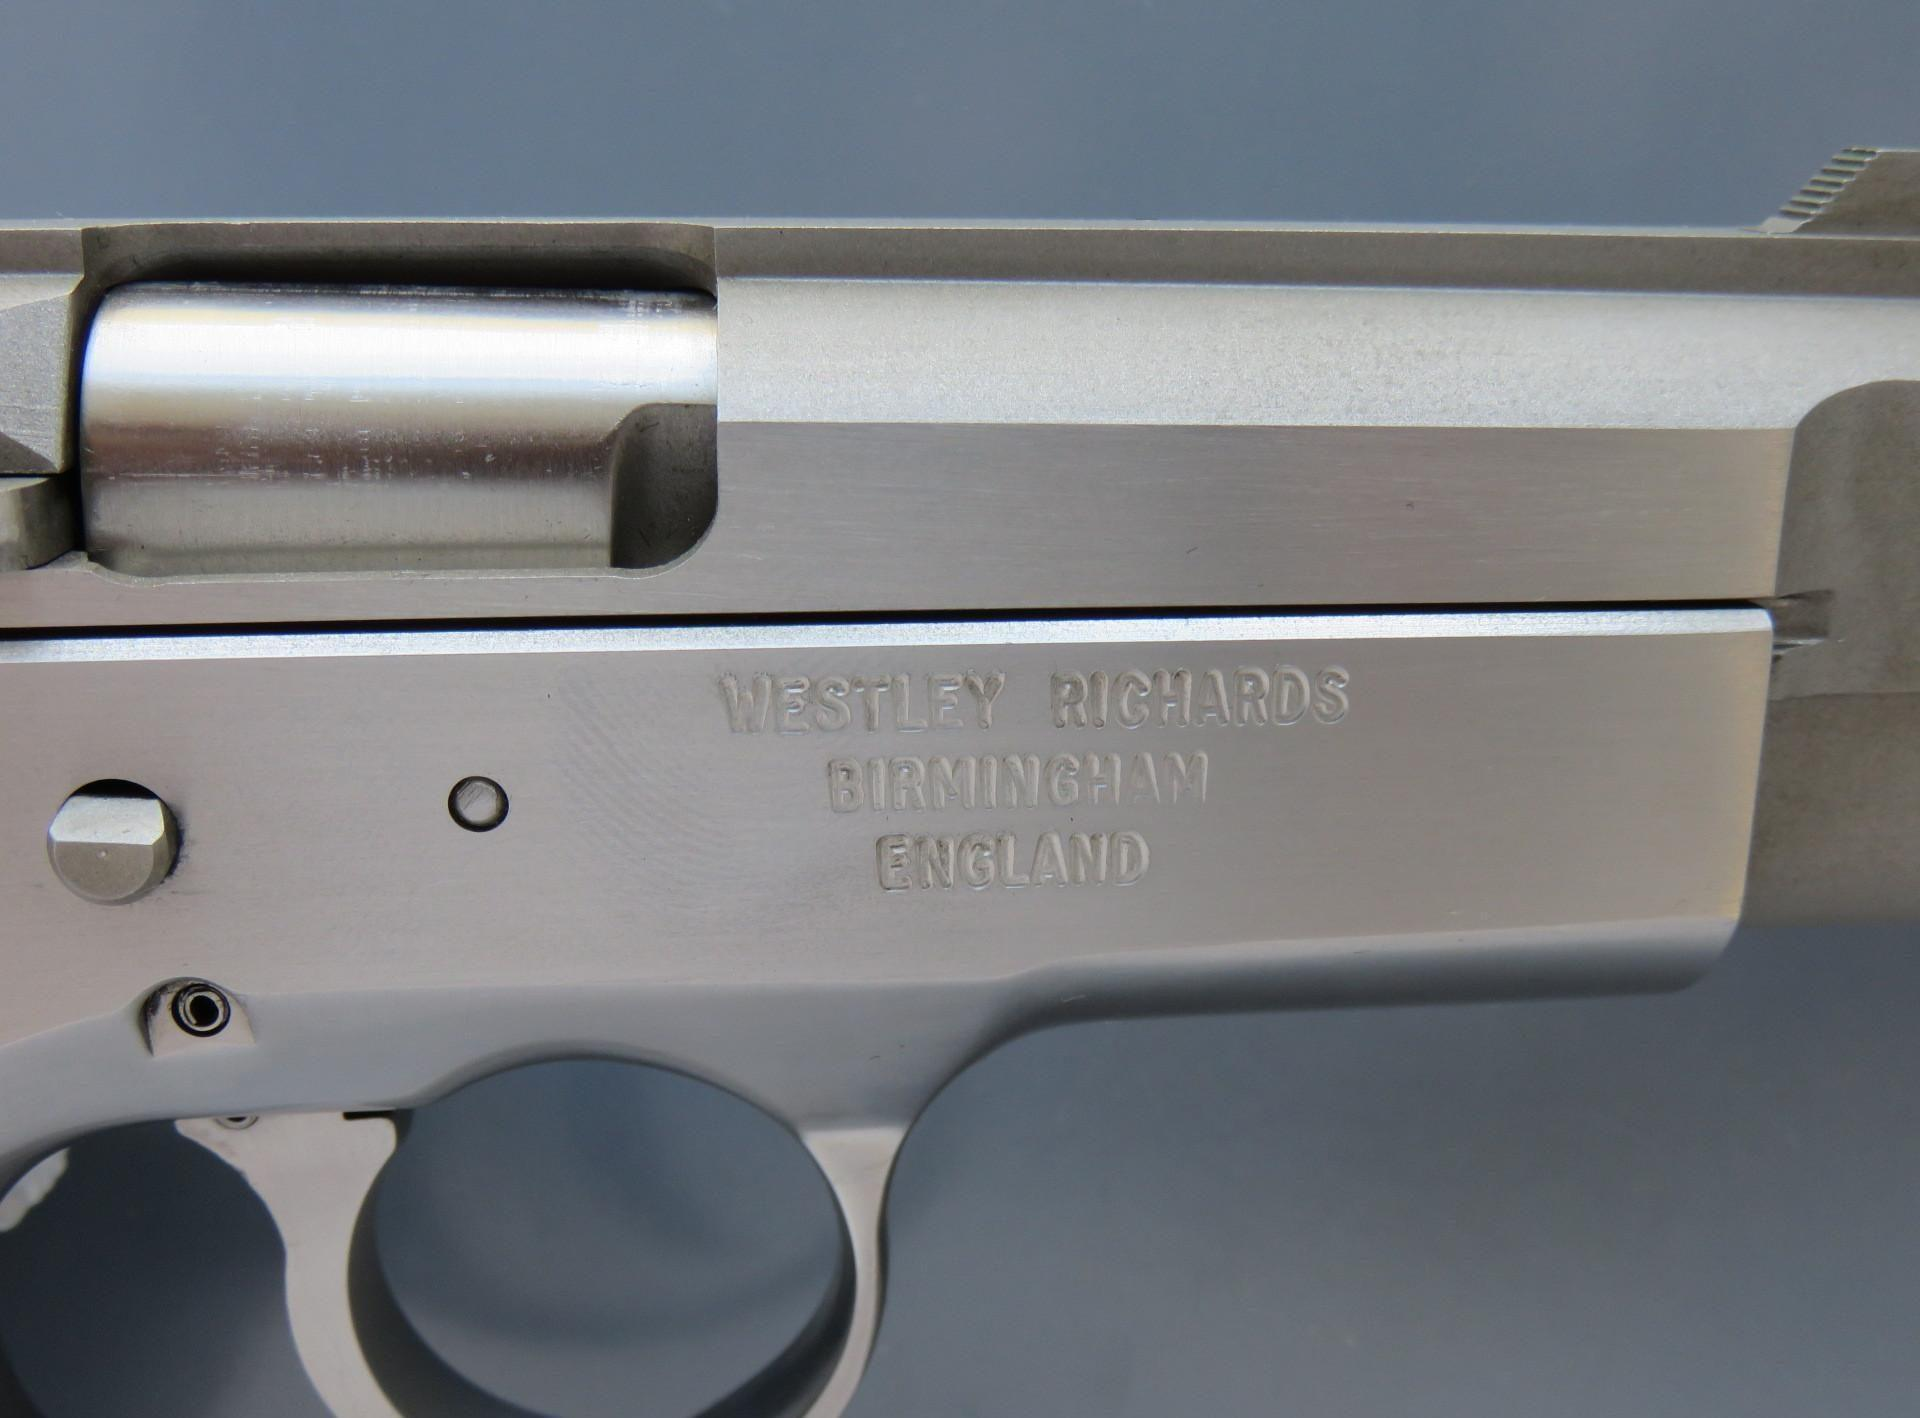 JSL Spitfire Mark II is rare pistol chambered in 9 mm Parabellum or 9 x 21 mm IMI